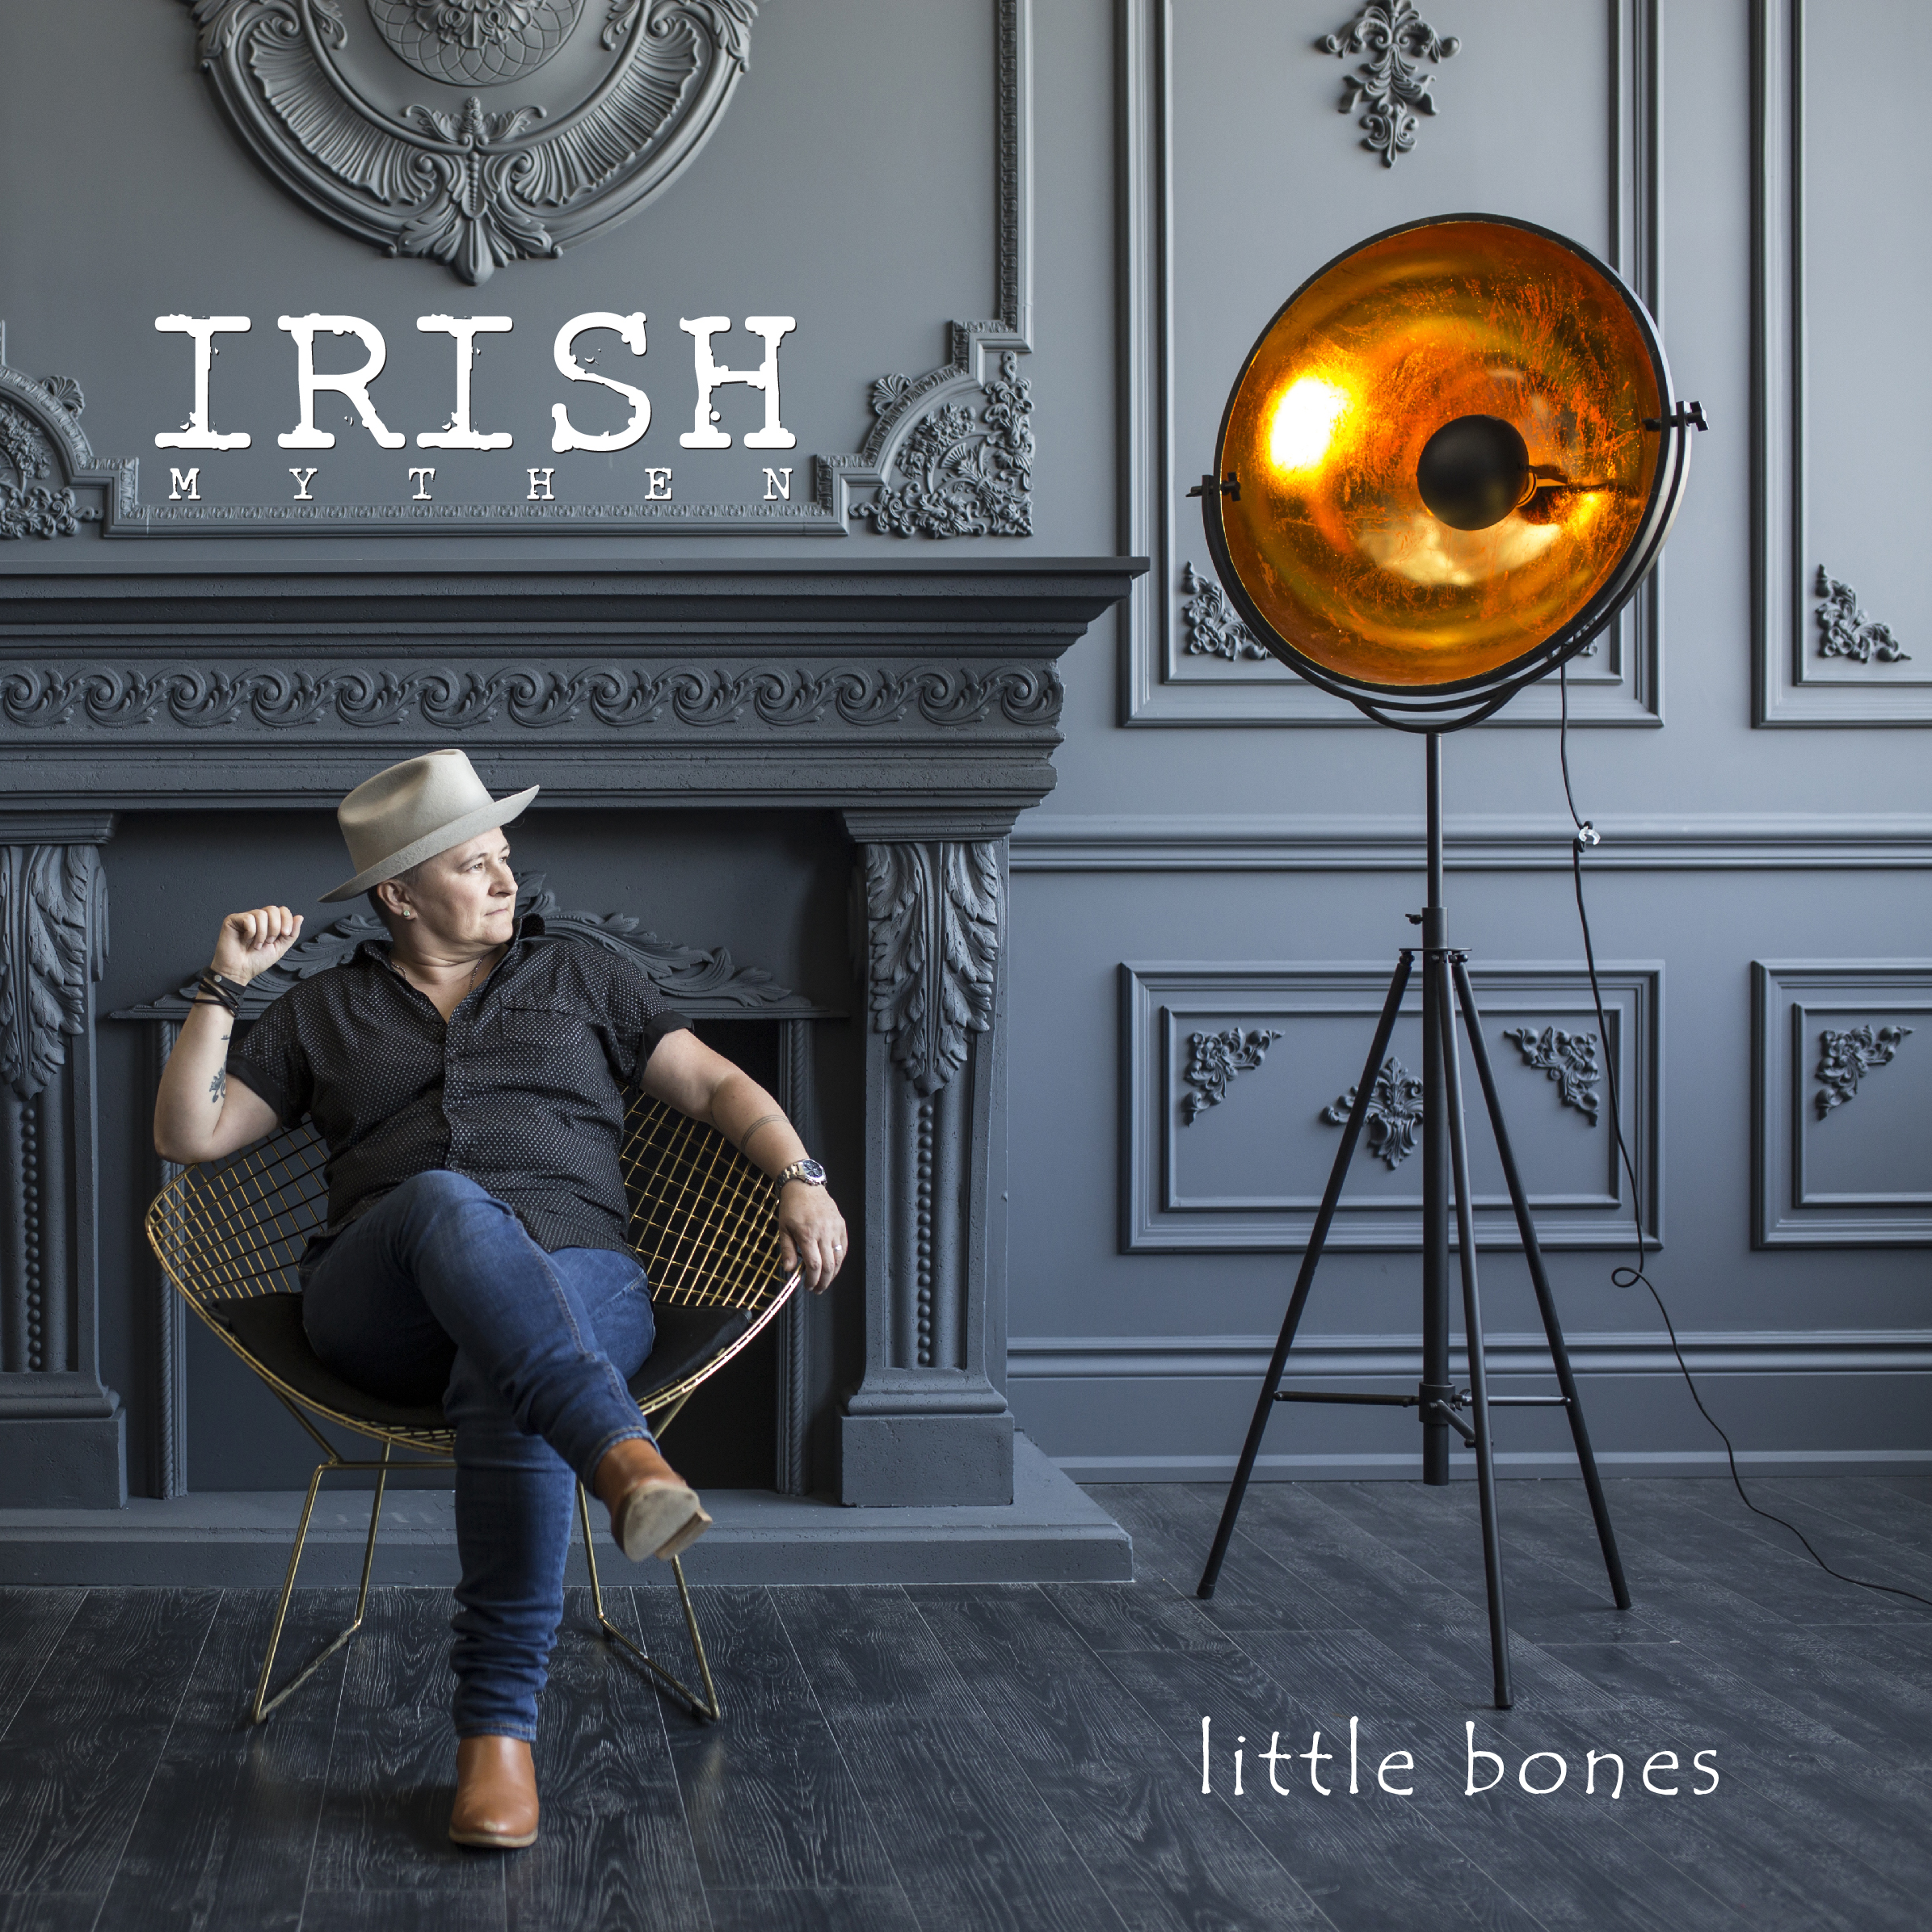 [Album Review] Irish Mythen - 'Little Bones' [Myth Records]